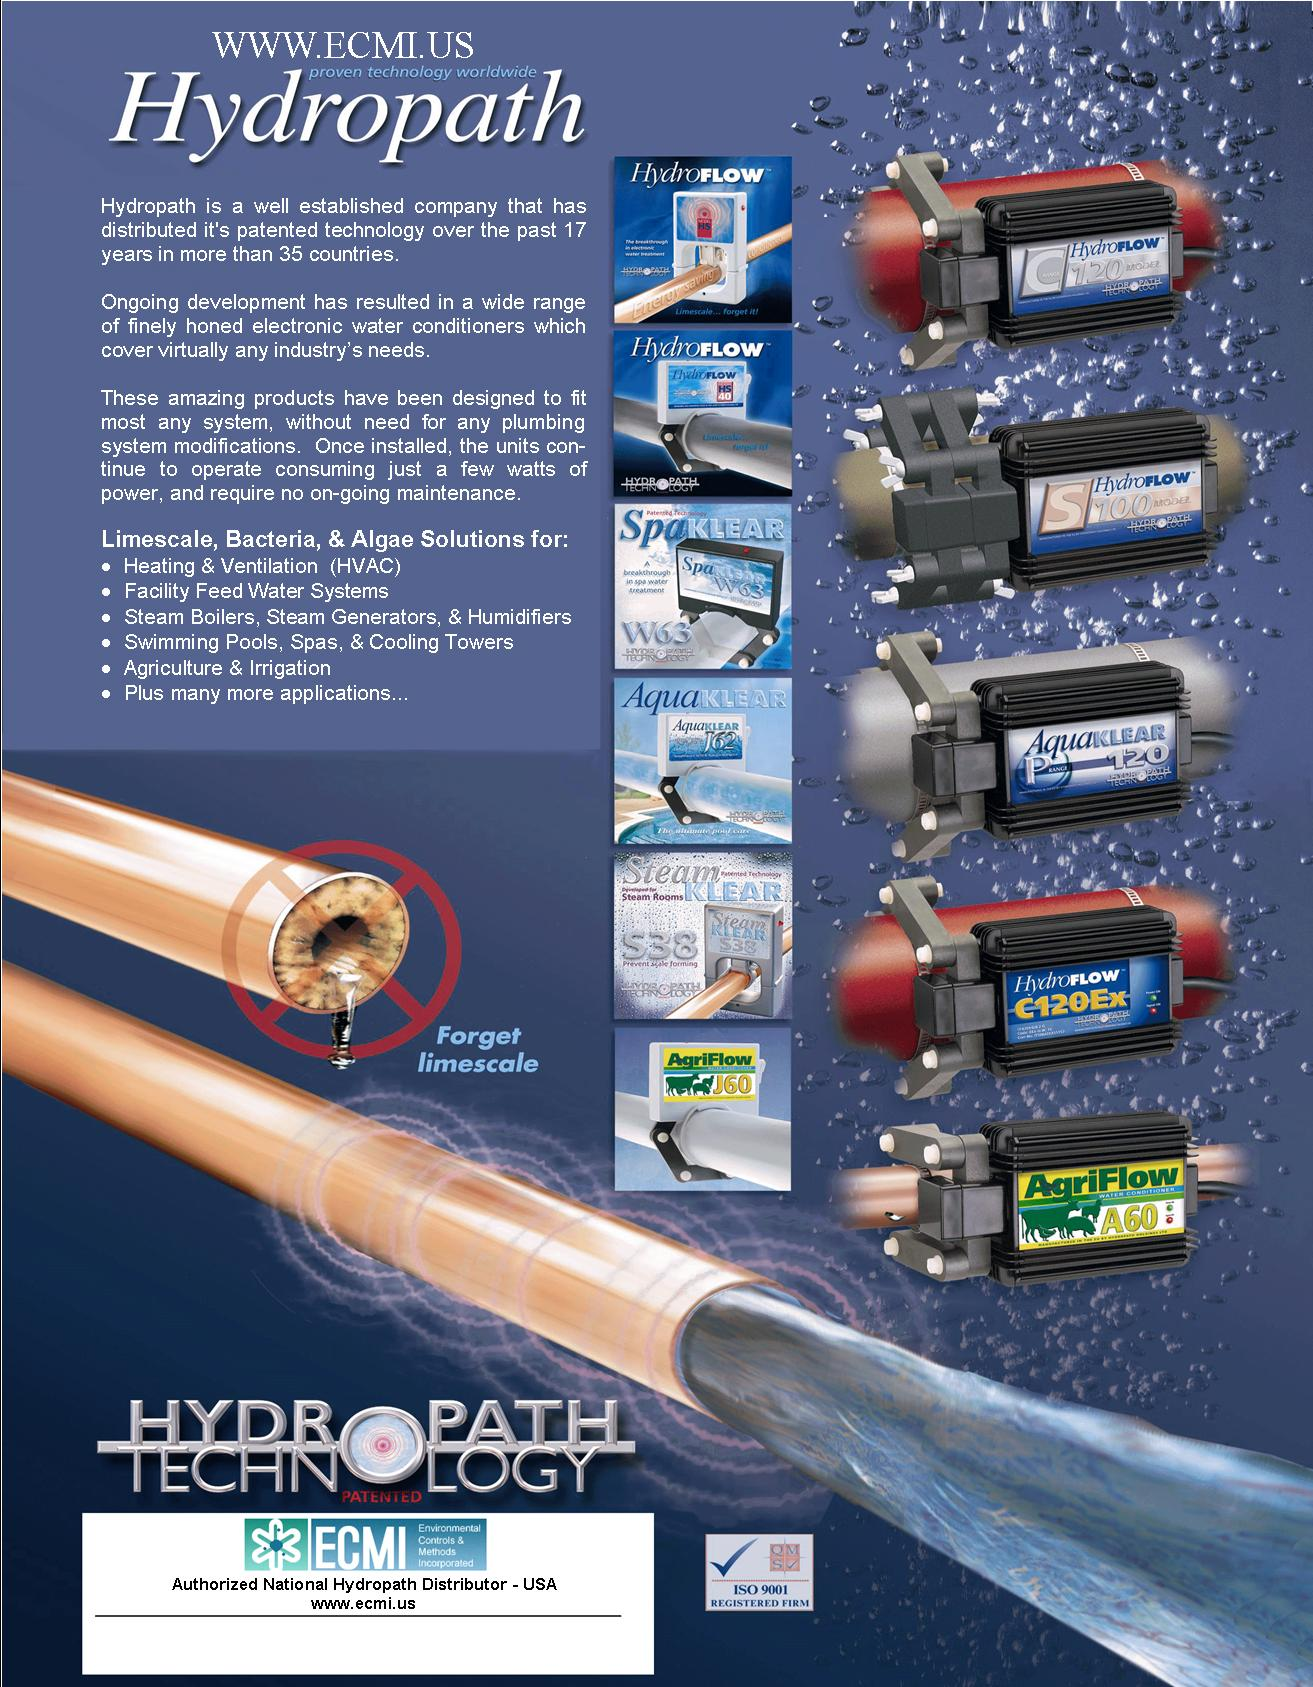 Hydropath Products